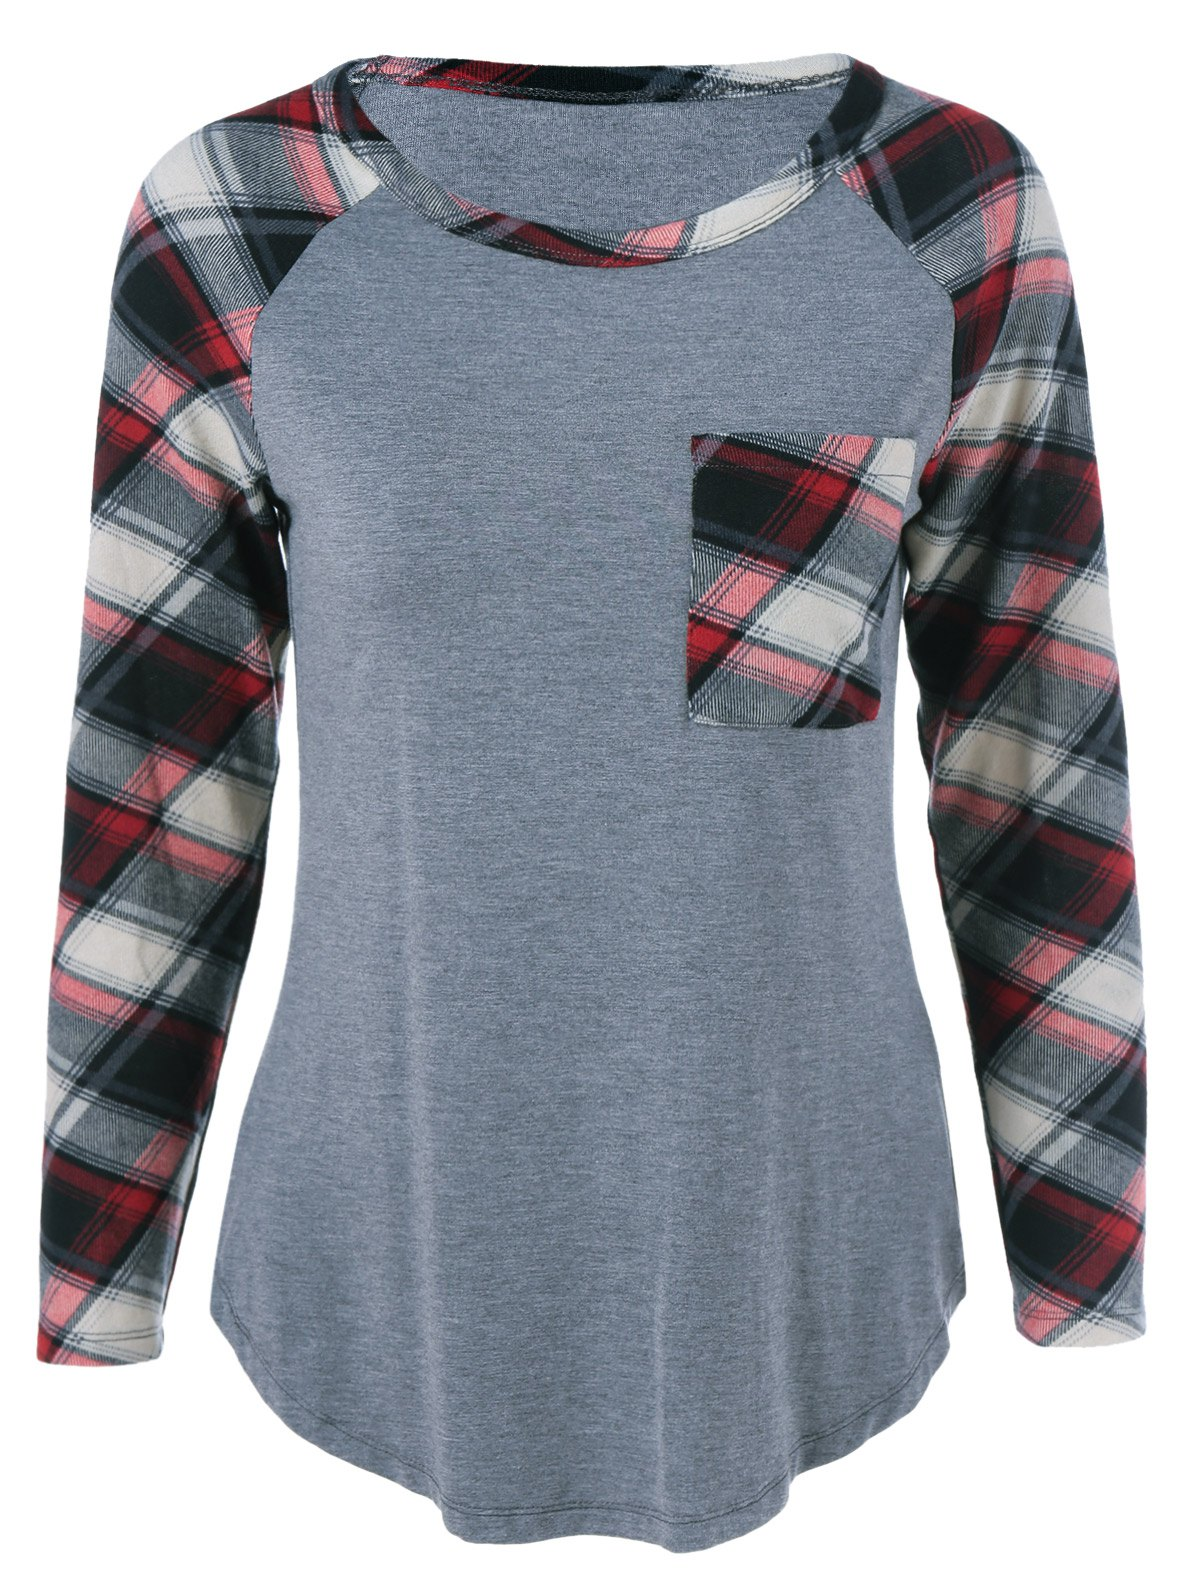 Single Pocket Plaid Full Sleeve T-ShirtWOMEN<br><br>Size: L; Color: GRAY; Material: Spandex; Sleeve Length: Full; Collar: Scoop Neck; Style: Casual; Pattern Type: Plaid; Season: Fall,Spring,Summer; Weight: 0.258kg; Package Contents: 1 x T-Shirt;